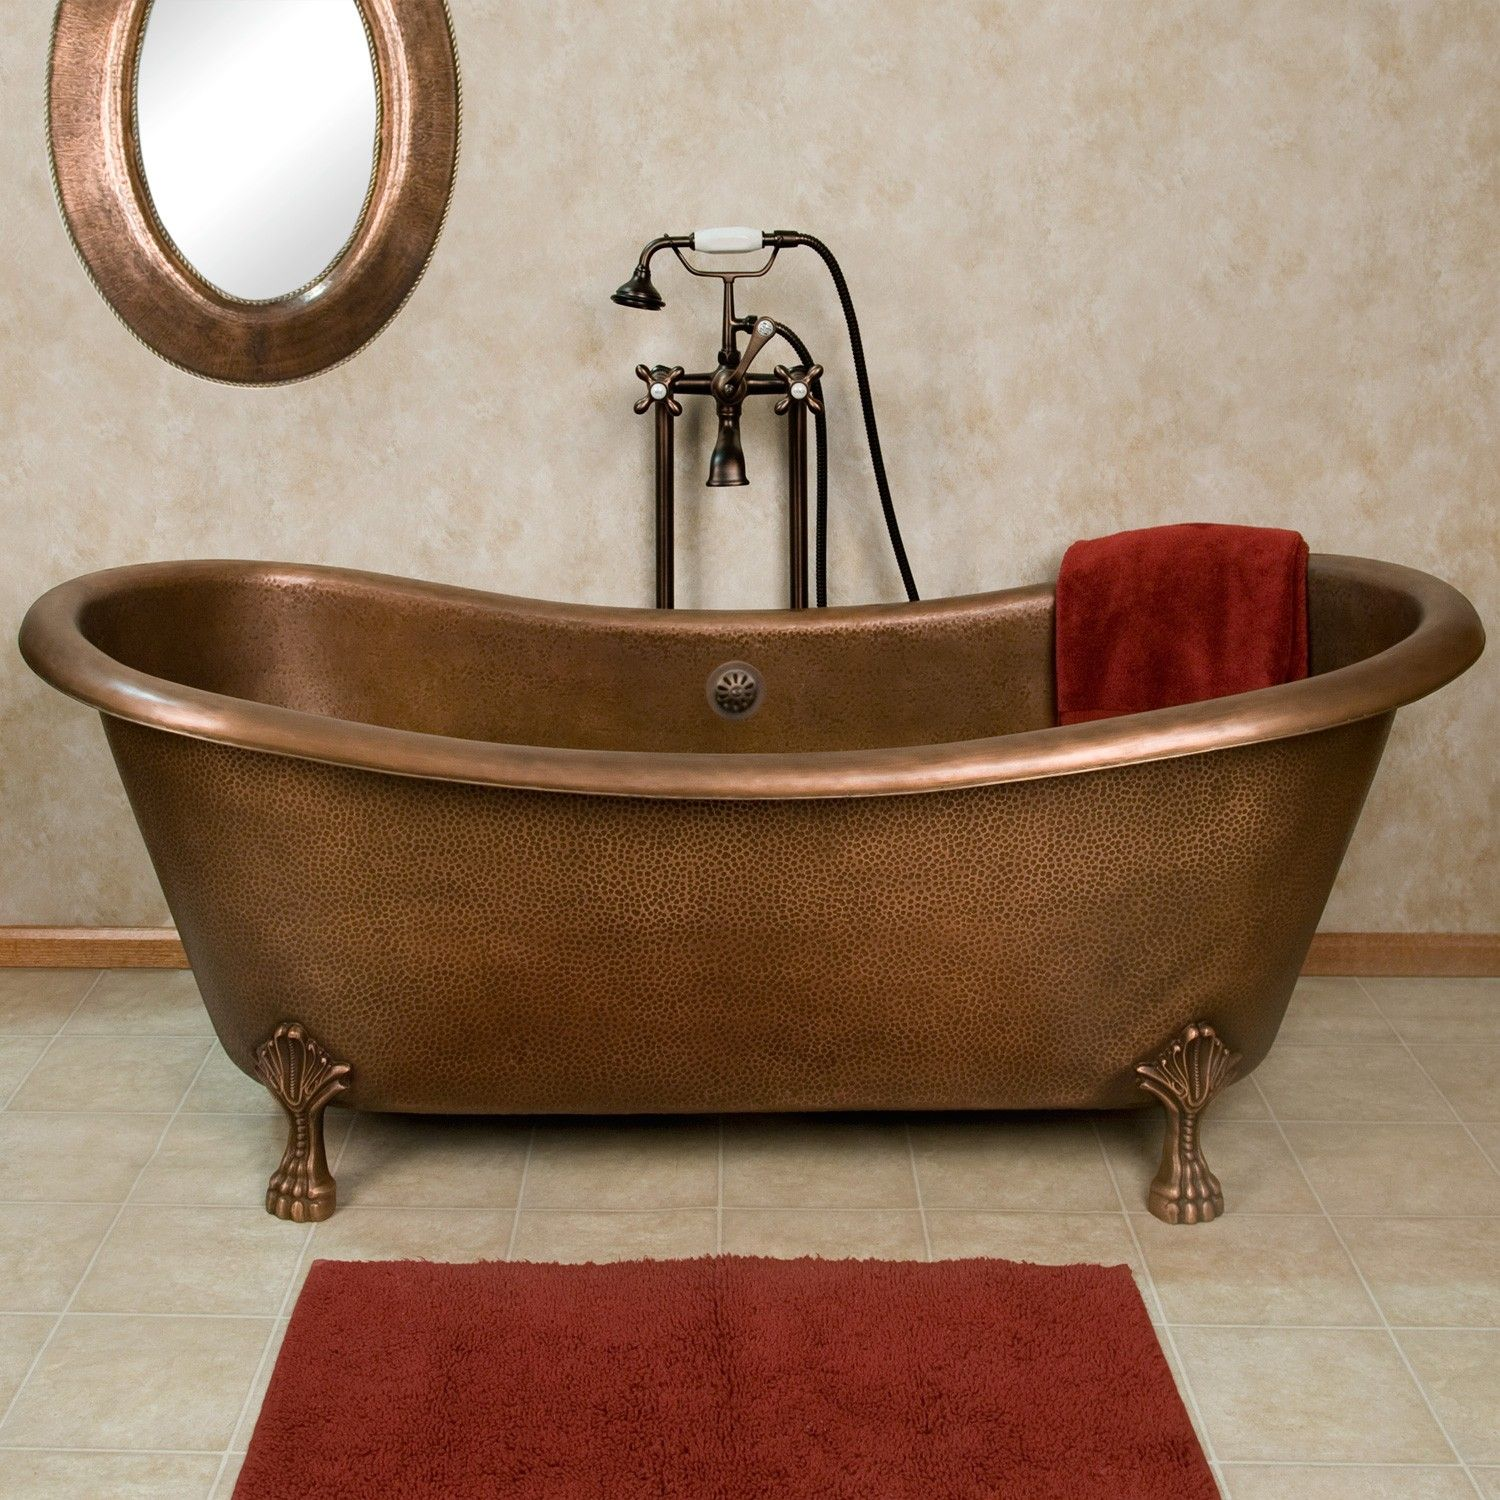 Josette Hammered Copper Double-Slipper Clawfoot Tub | Bed/Bath ideas ...